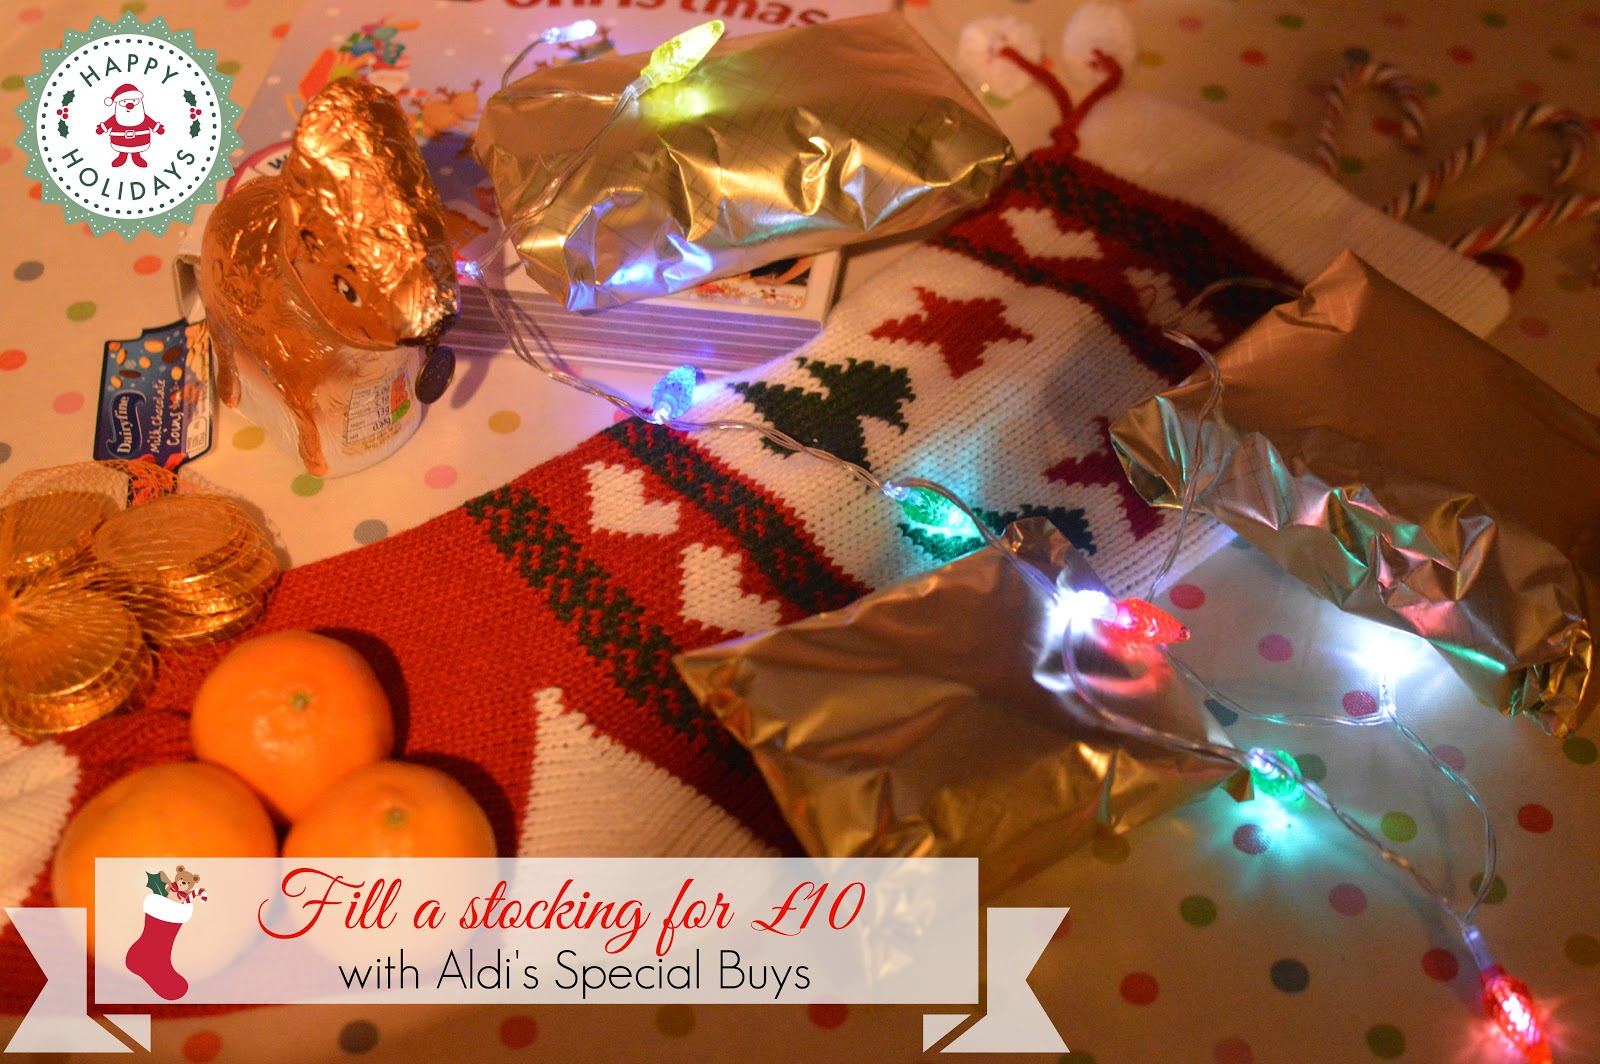 Christmas Stocking Filler £10 Aldi Special Buys